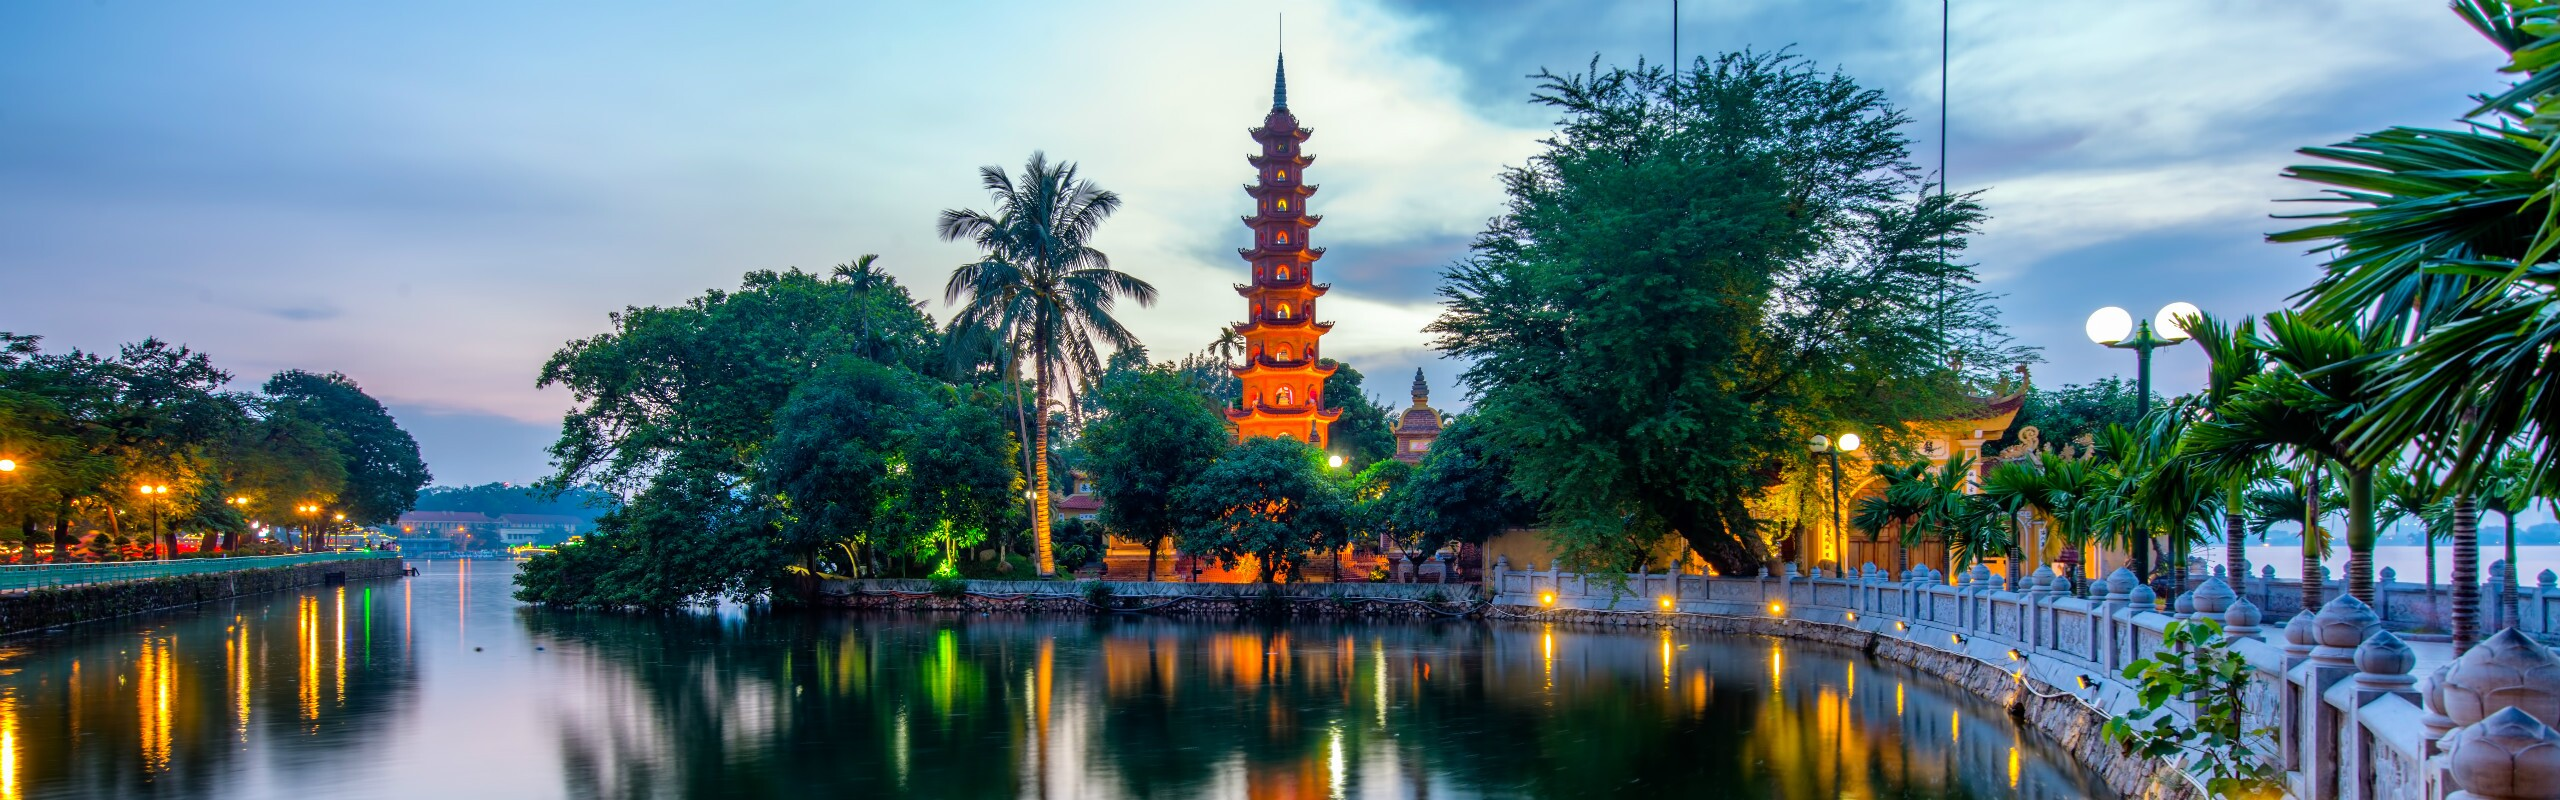 Top 8 Things to Do in Hanoi